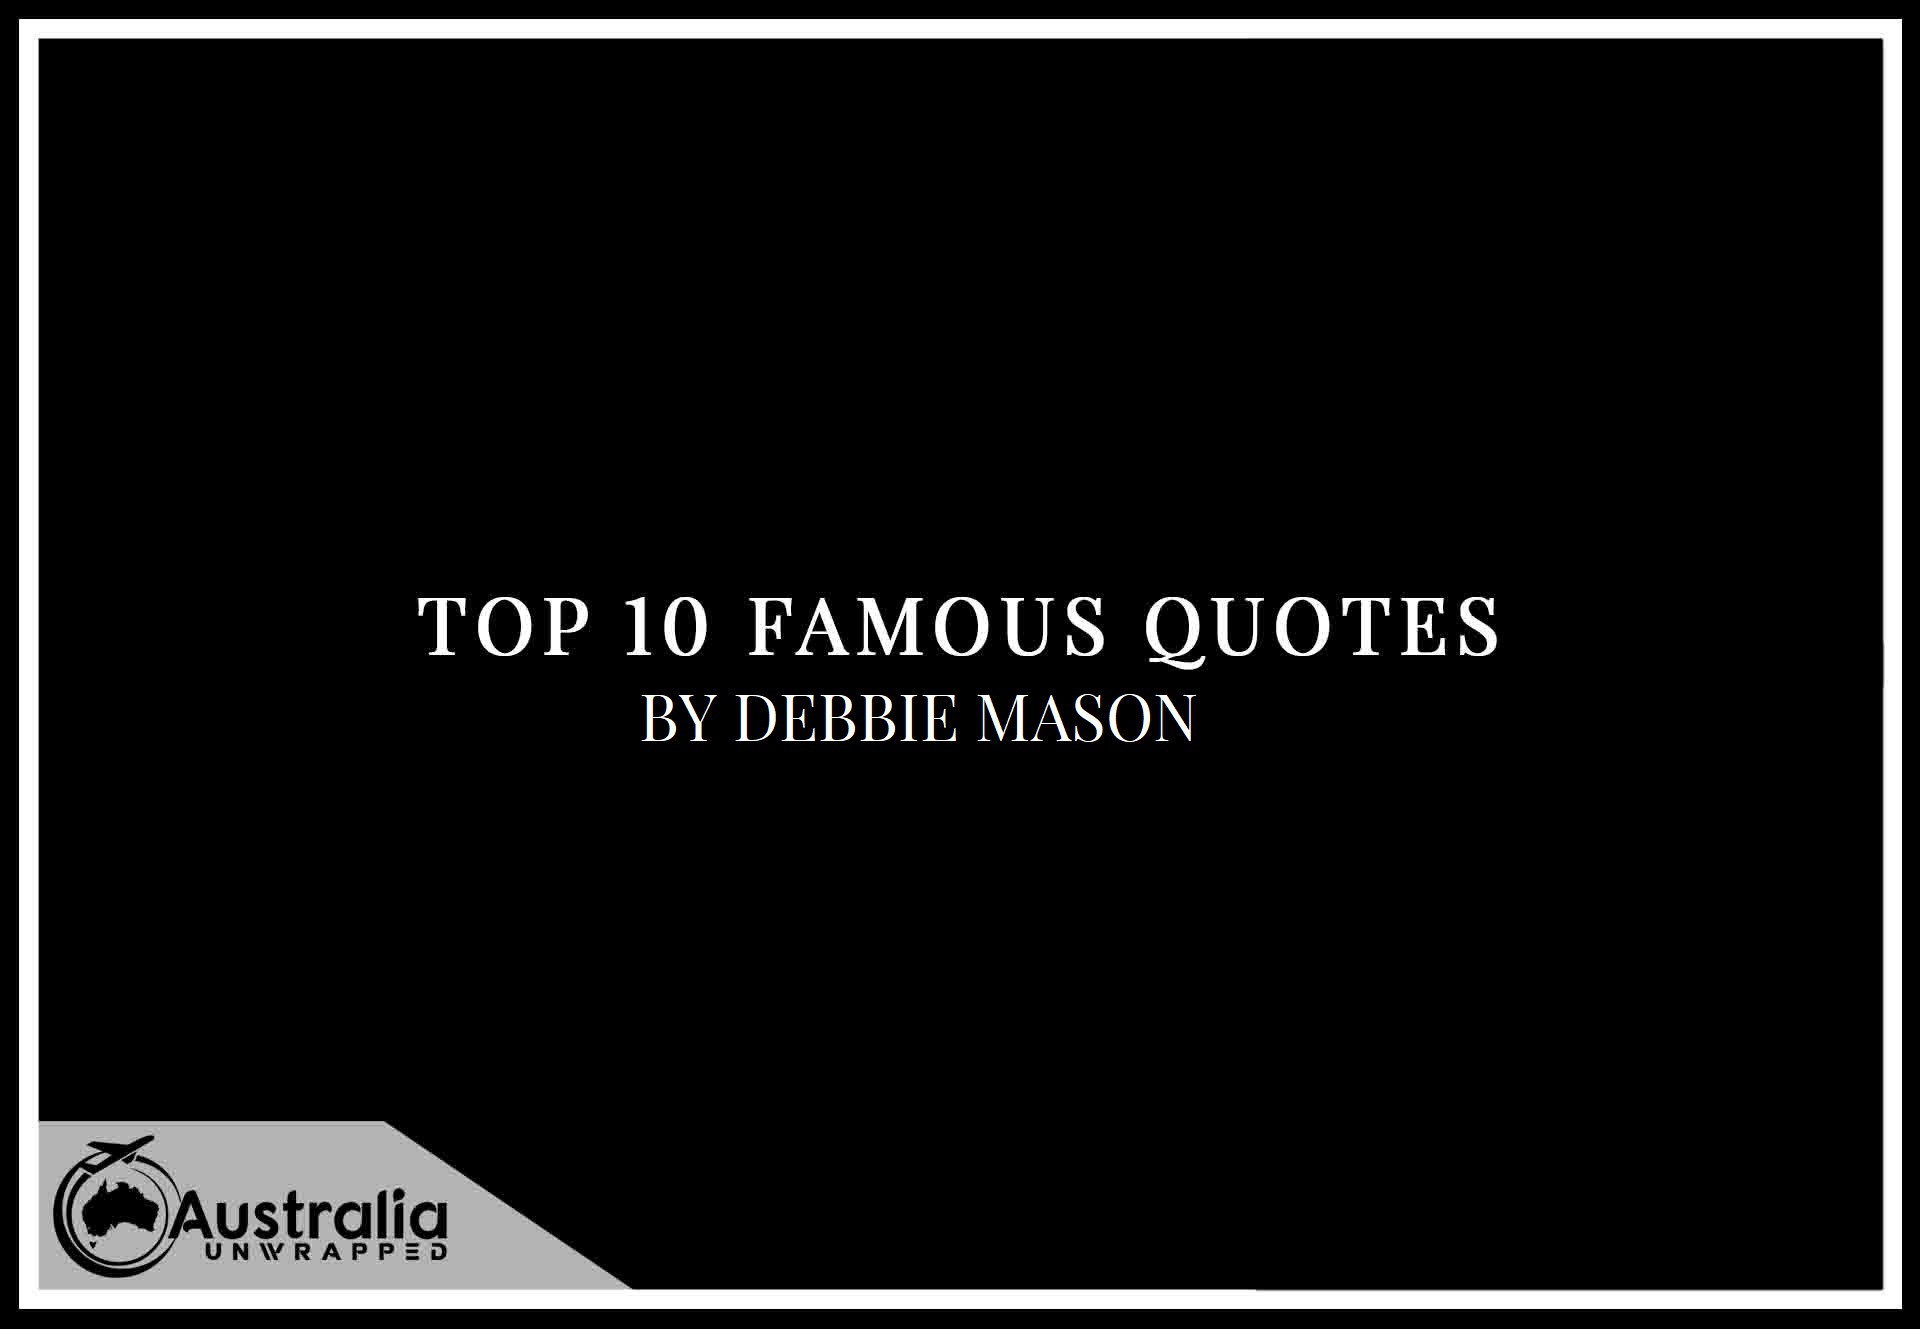 Top 10 Famous Quotes by Author Debbie Mason